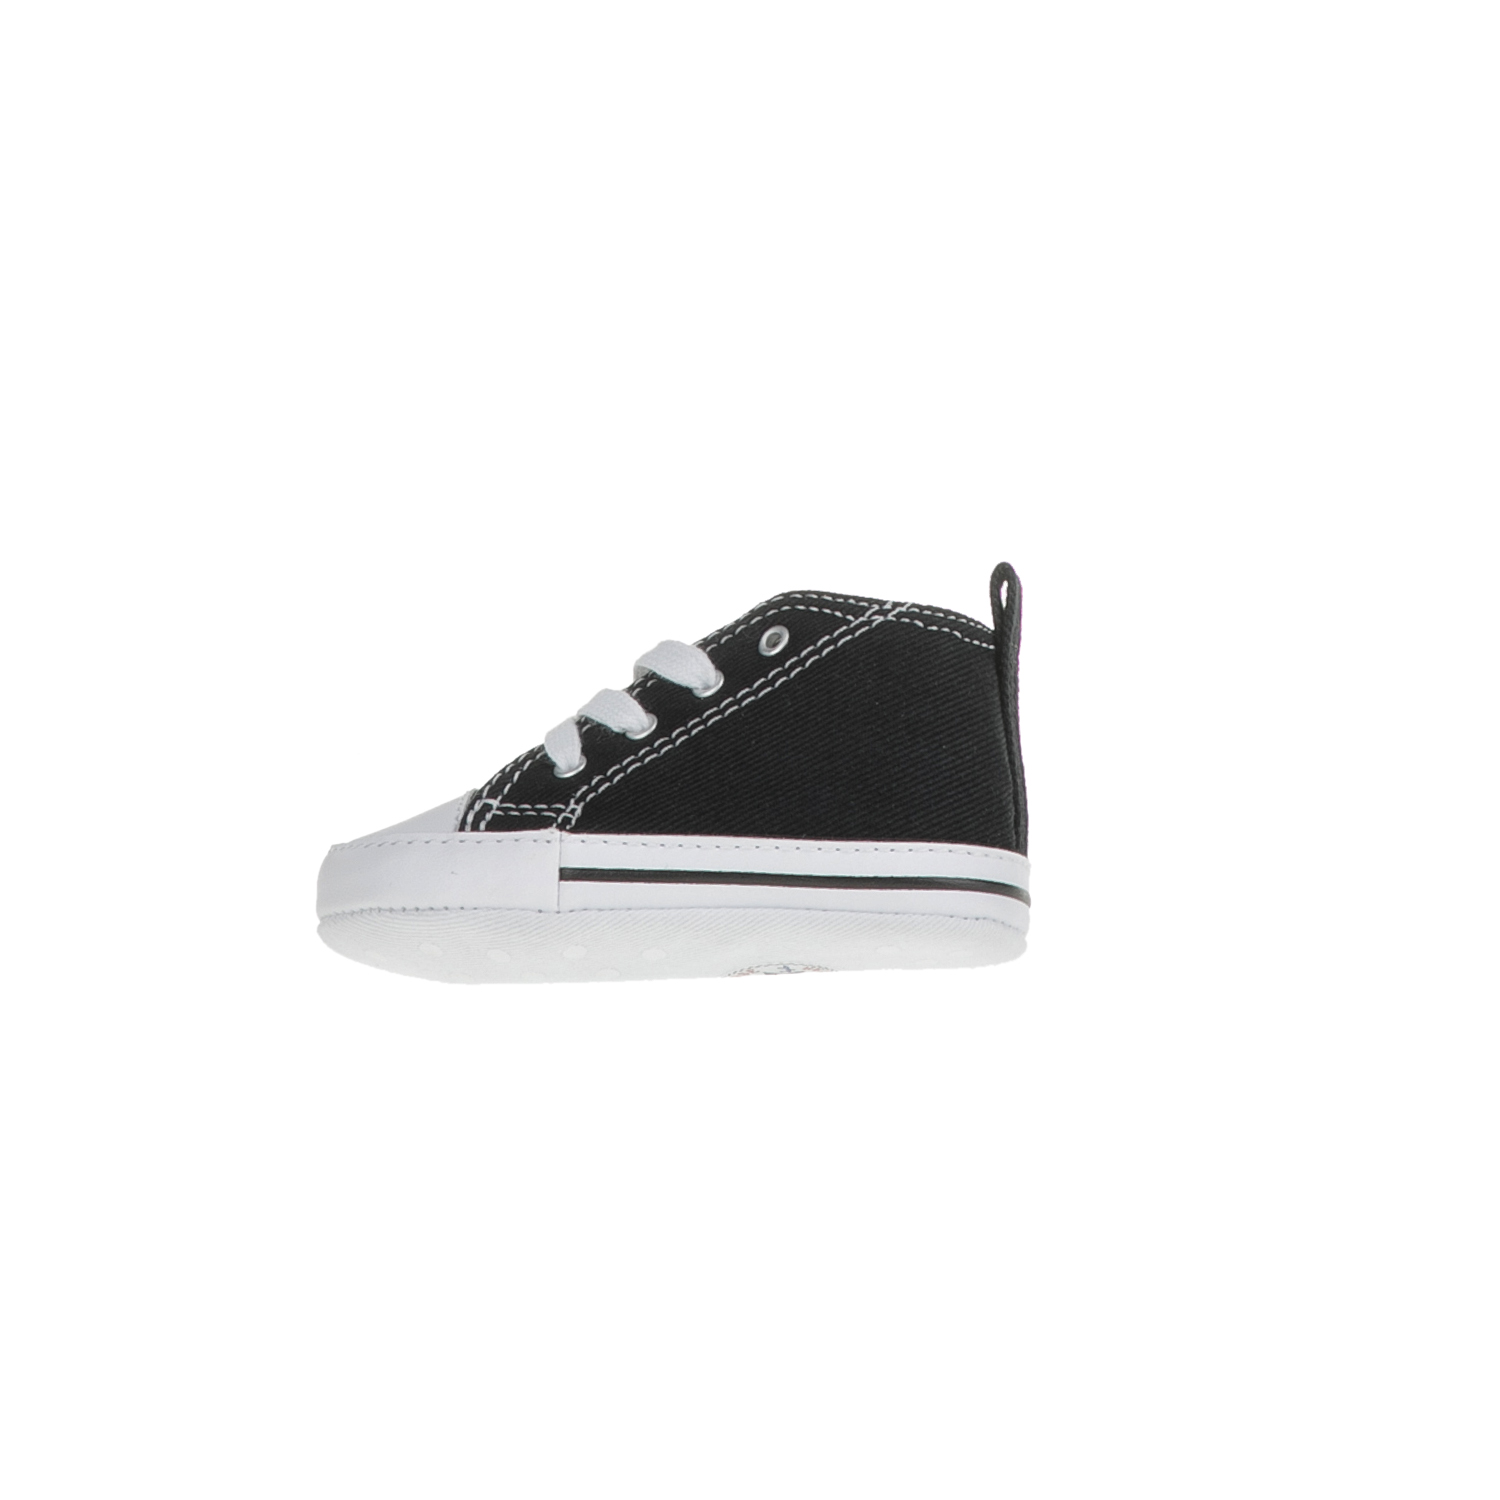 80c360e428a CONVERSE – Βρεφικά παπούτσια αγκαλιάς CHUCK TAYLOR FIRST STAR μαύρα  Παιδικά/Baby/Παπούτσια/